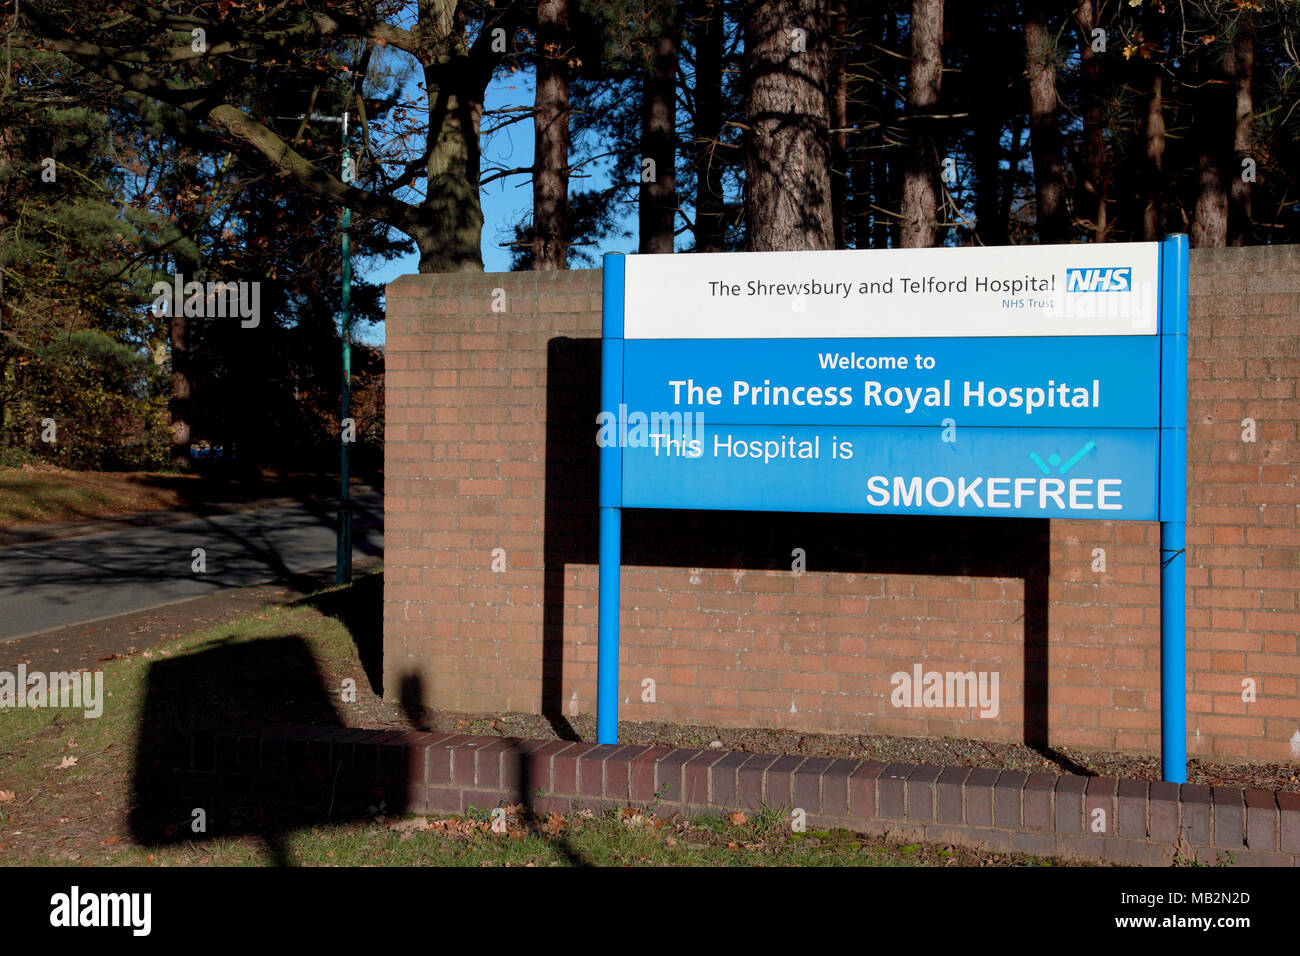 Sign at the entrance to the Princess Royal Hospital, part of the Shrewsbury and Telford Hospital Trust - Stock Image